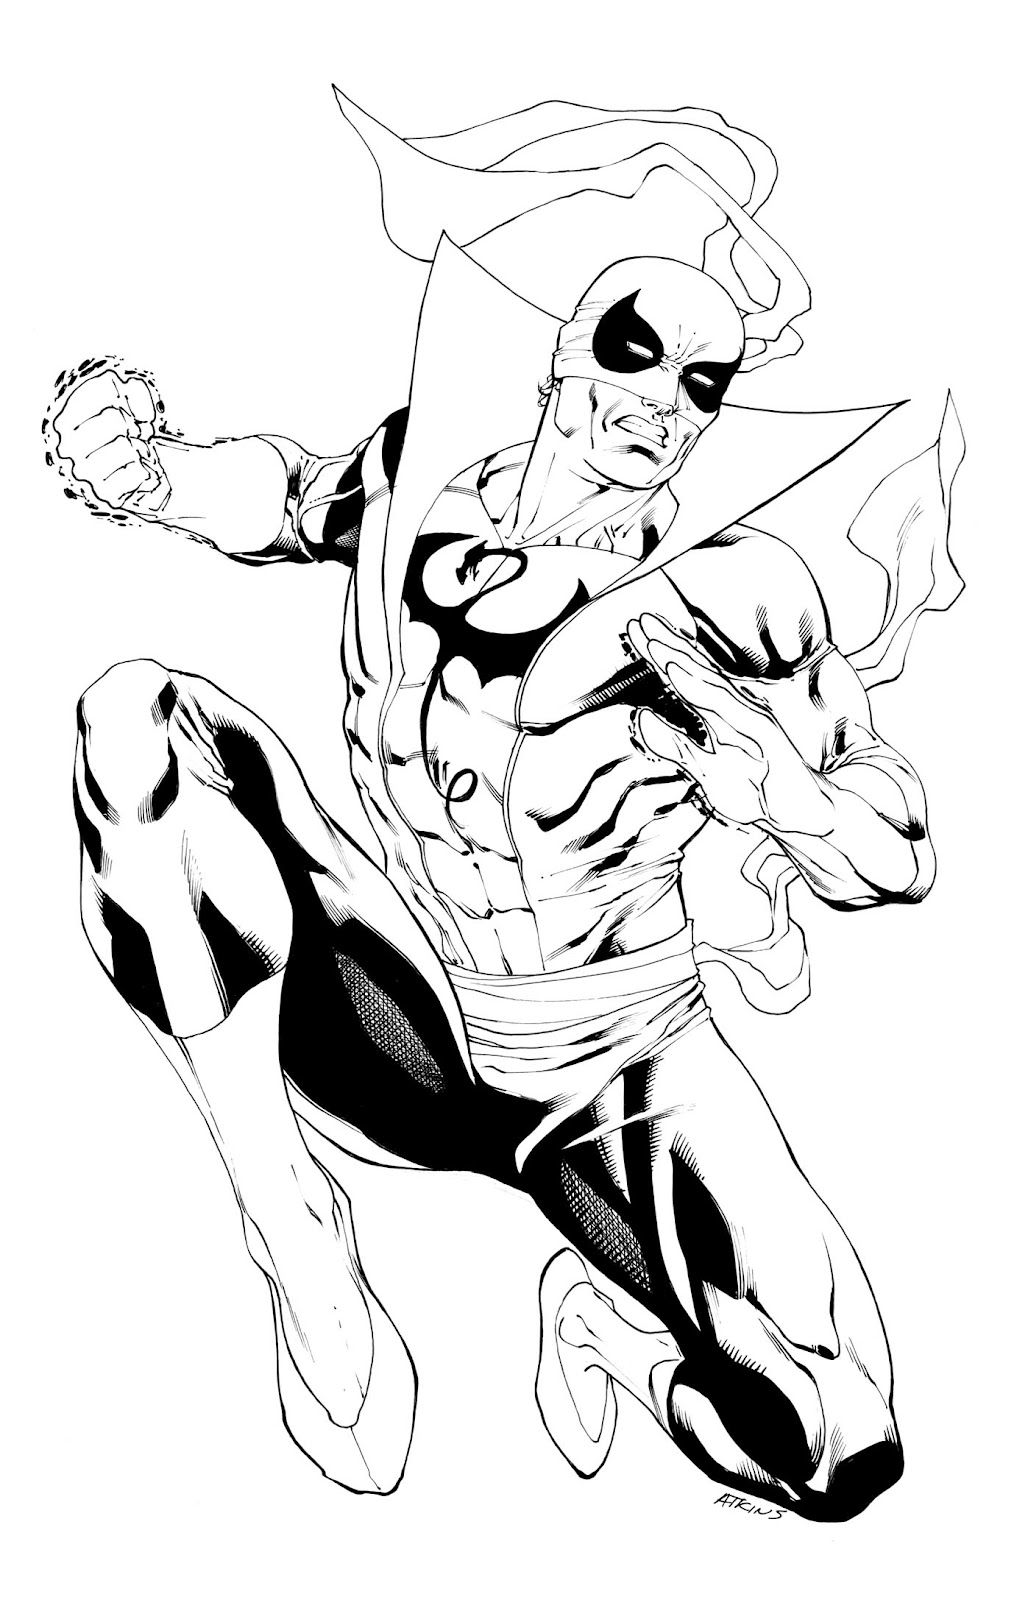 Robert Atkins Art Avengers Iron Fist